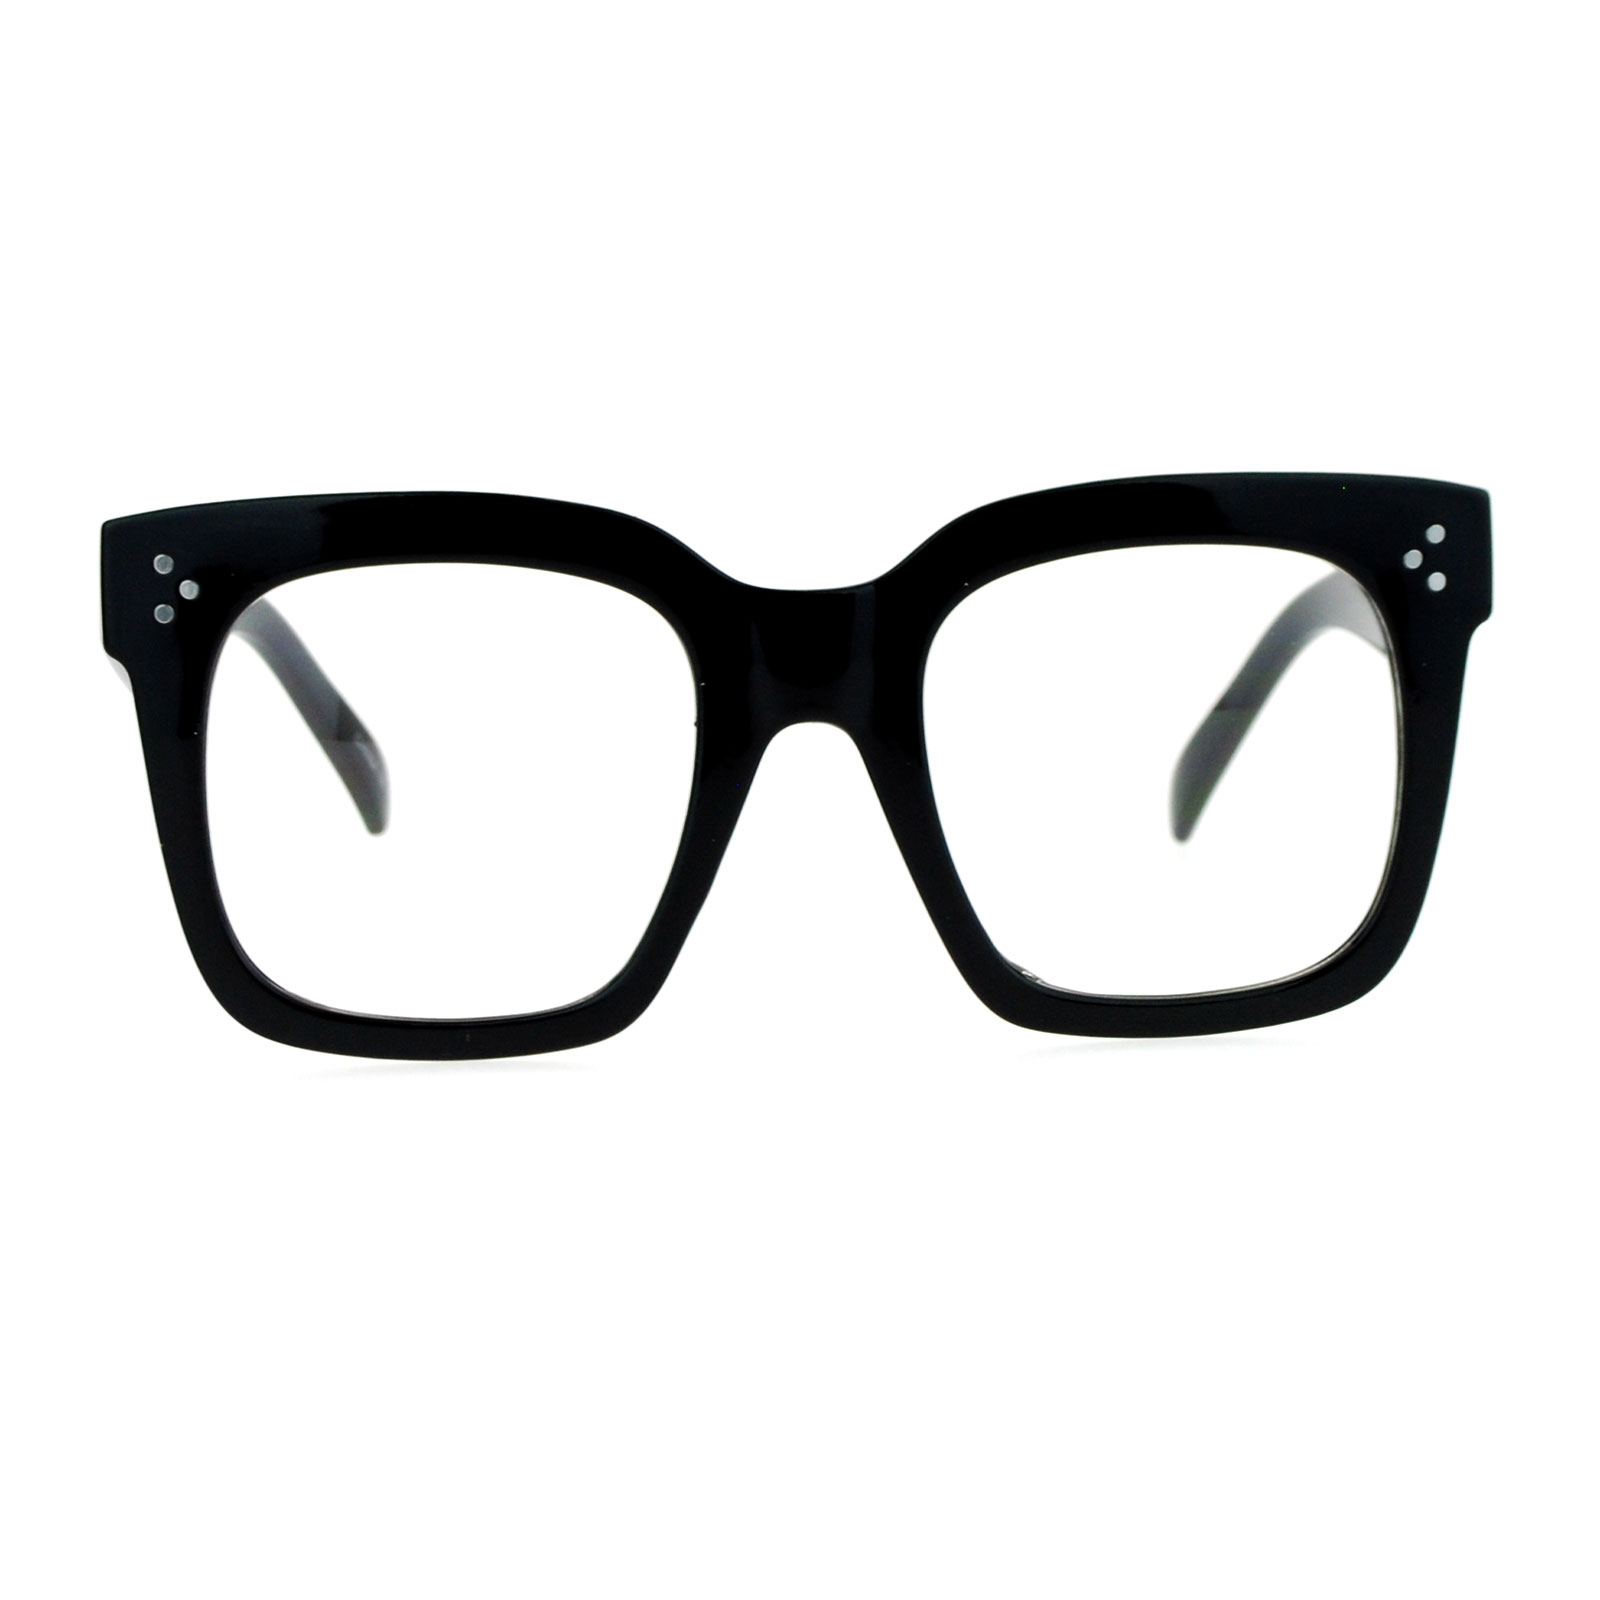 SA106 Oversize Thick Plastic Nerd Rectangular Horn Rim Horned Clear Lens Glasses Shinny Black - Walmart.com at Walmart - Vision Center in Connersville, IN | Tuggl